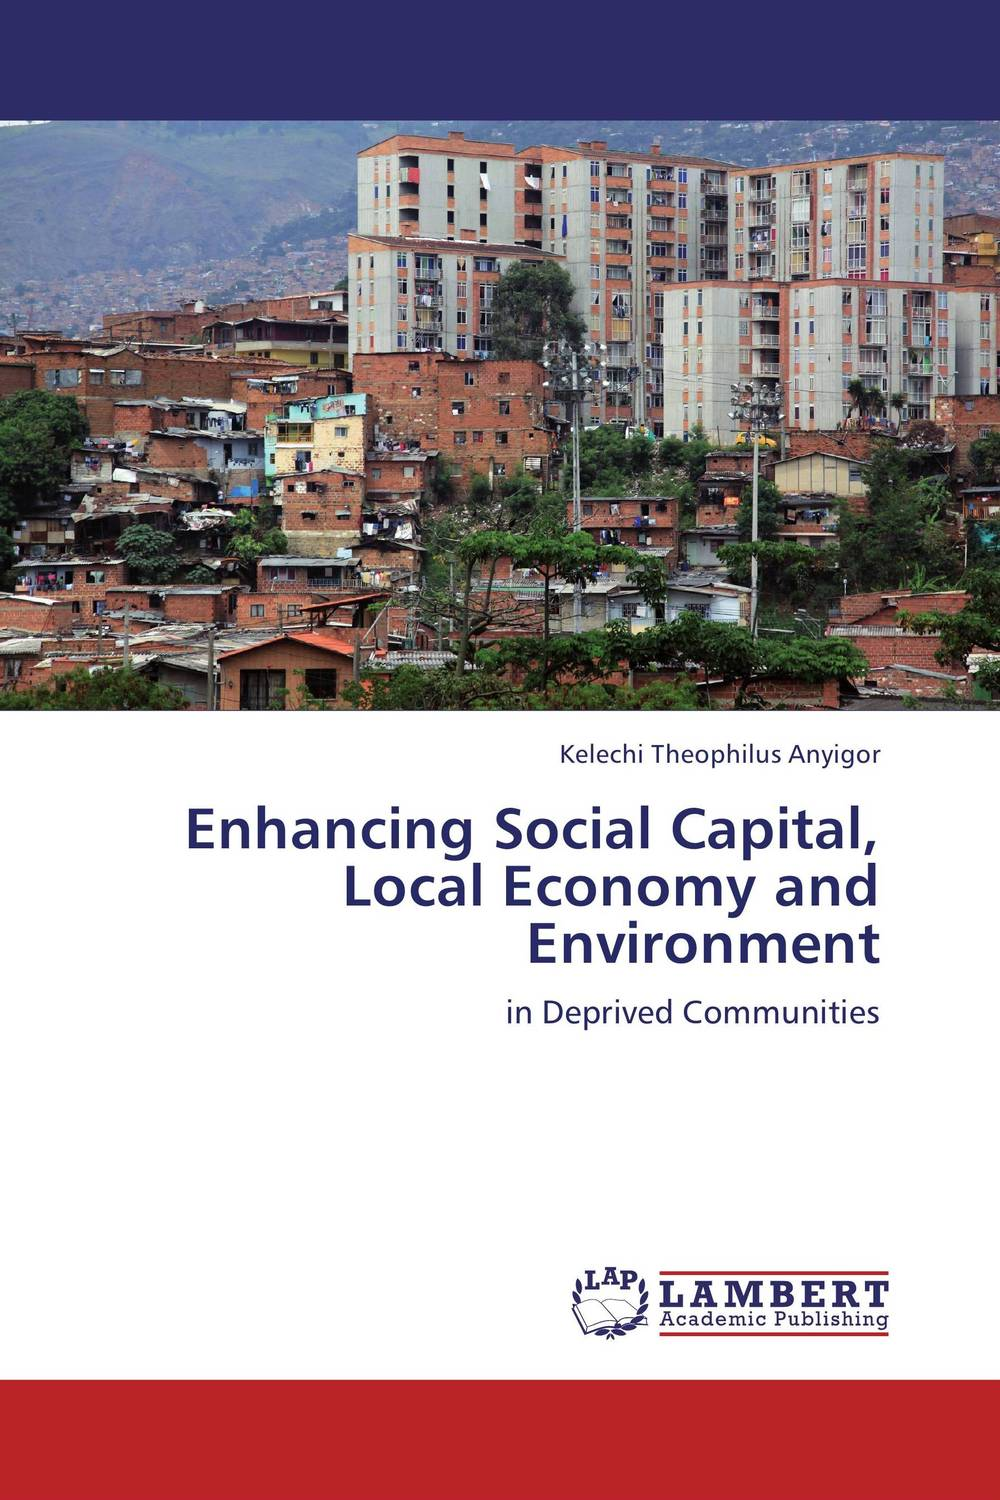 Enhancing Social Capital, Local Economy and Environment i manev social capital and strategy effectiveness an empirical study of entrepreneurial ventures in a transition economy